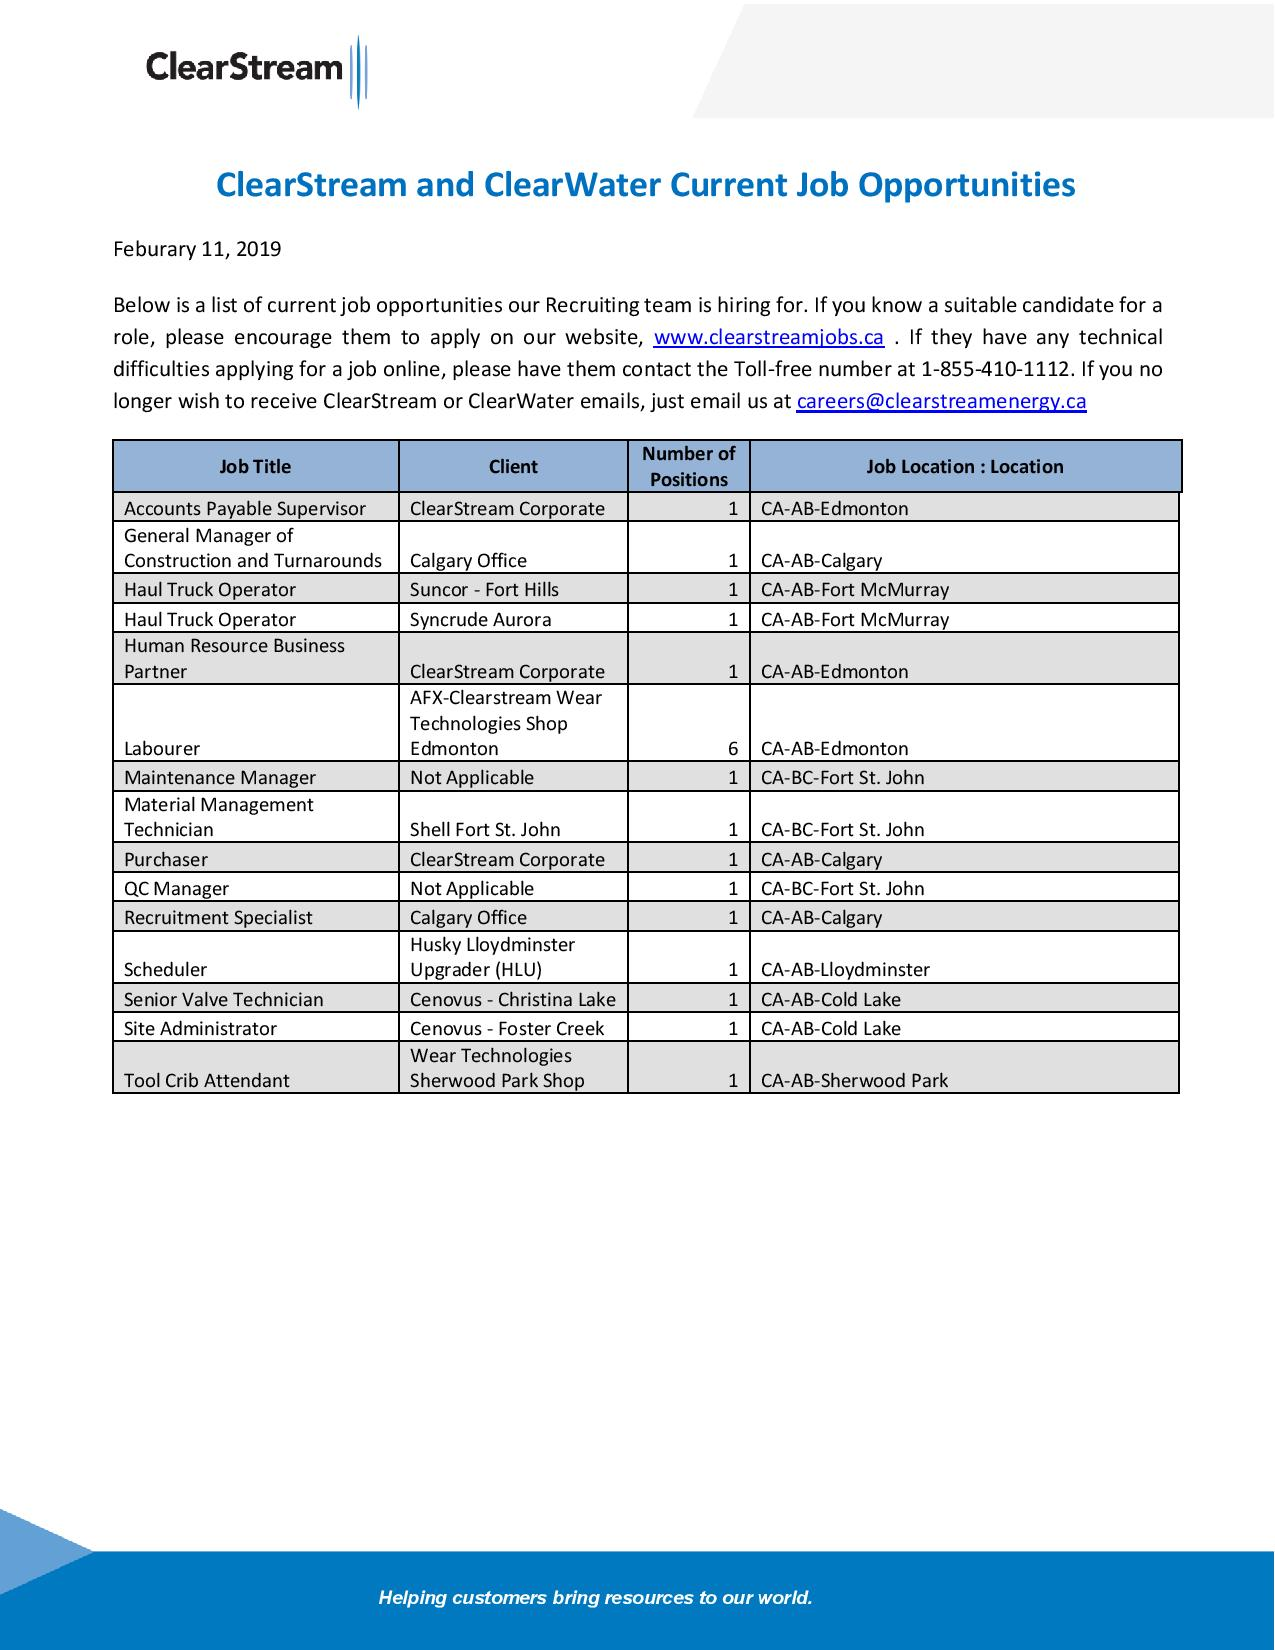 ClearStream and ClearWater Current Job Opportunities Feb 11 2019-page-001